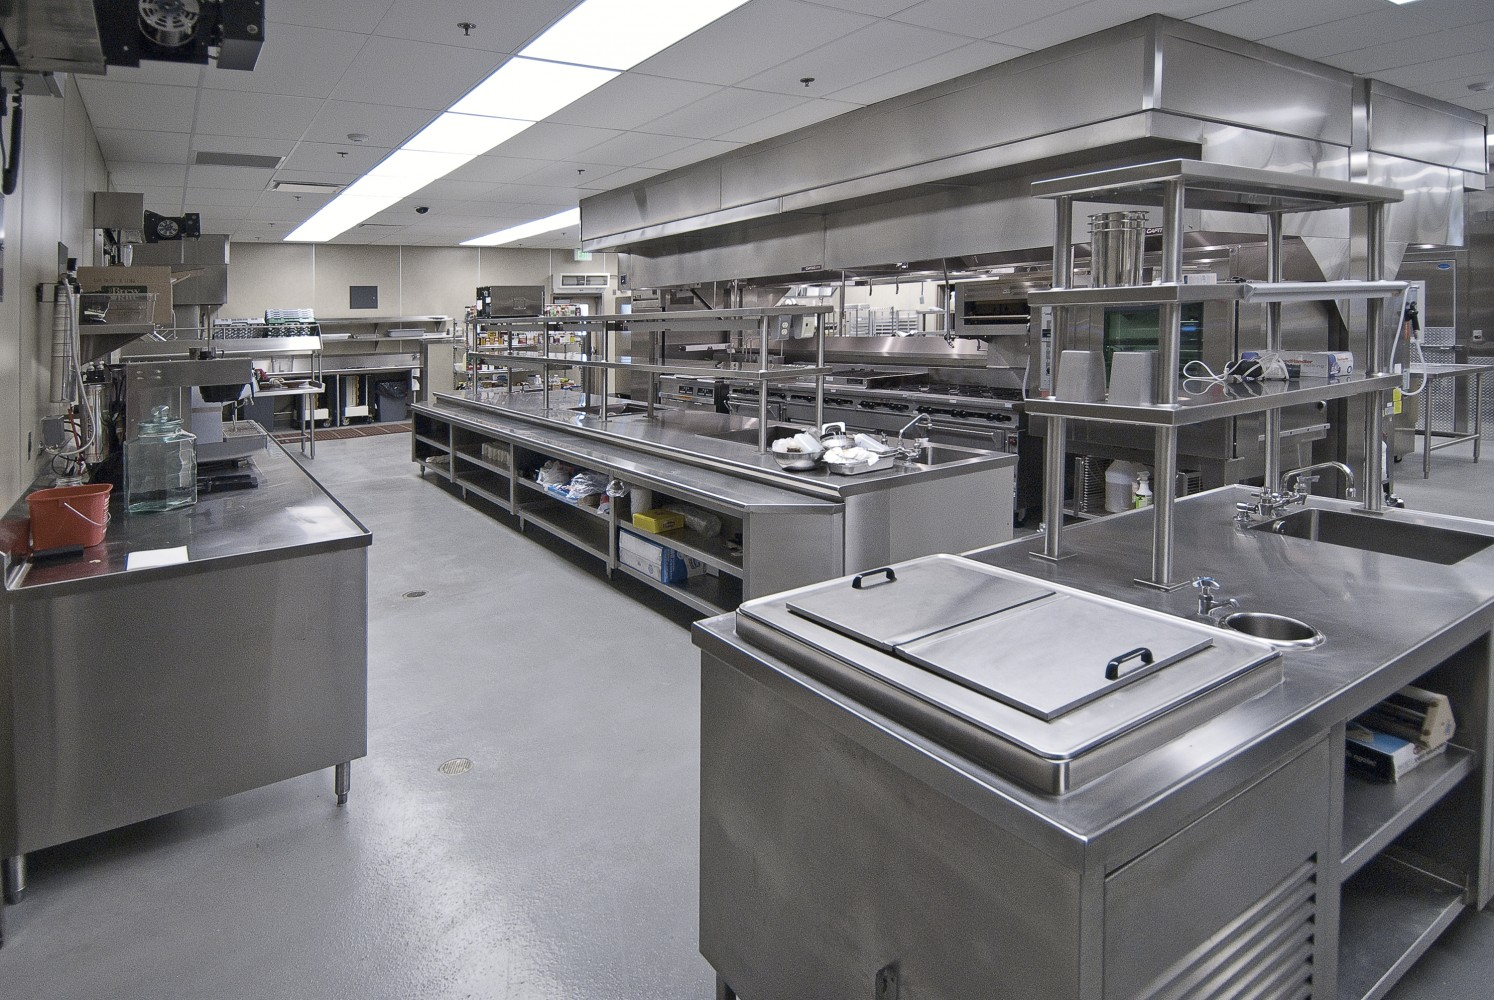 Commercial Kitchen Equipment Product ~ Restaurant equipment kitchen supplies for in utica ny